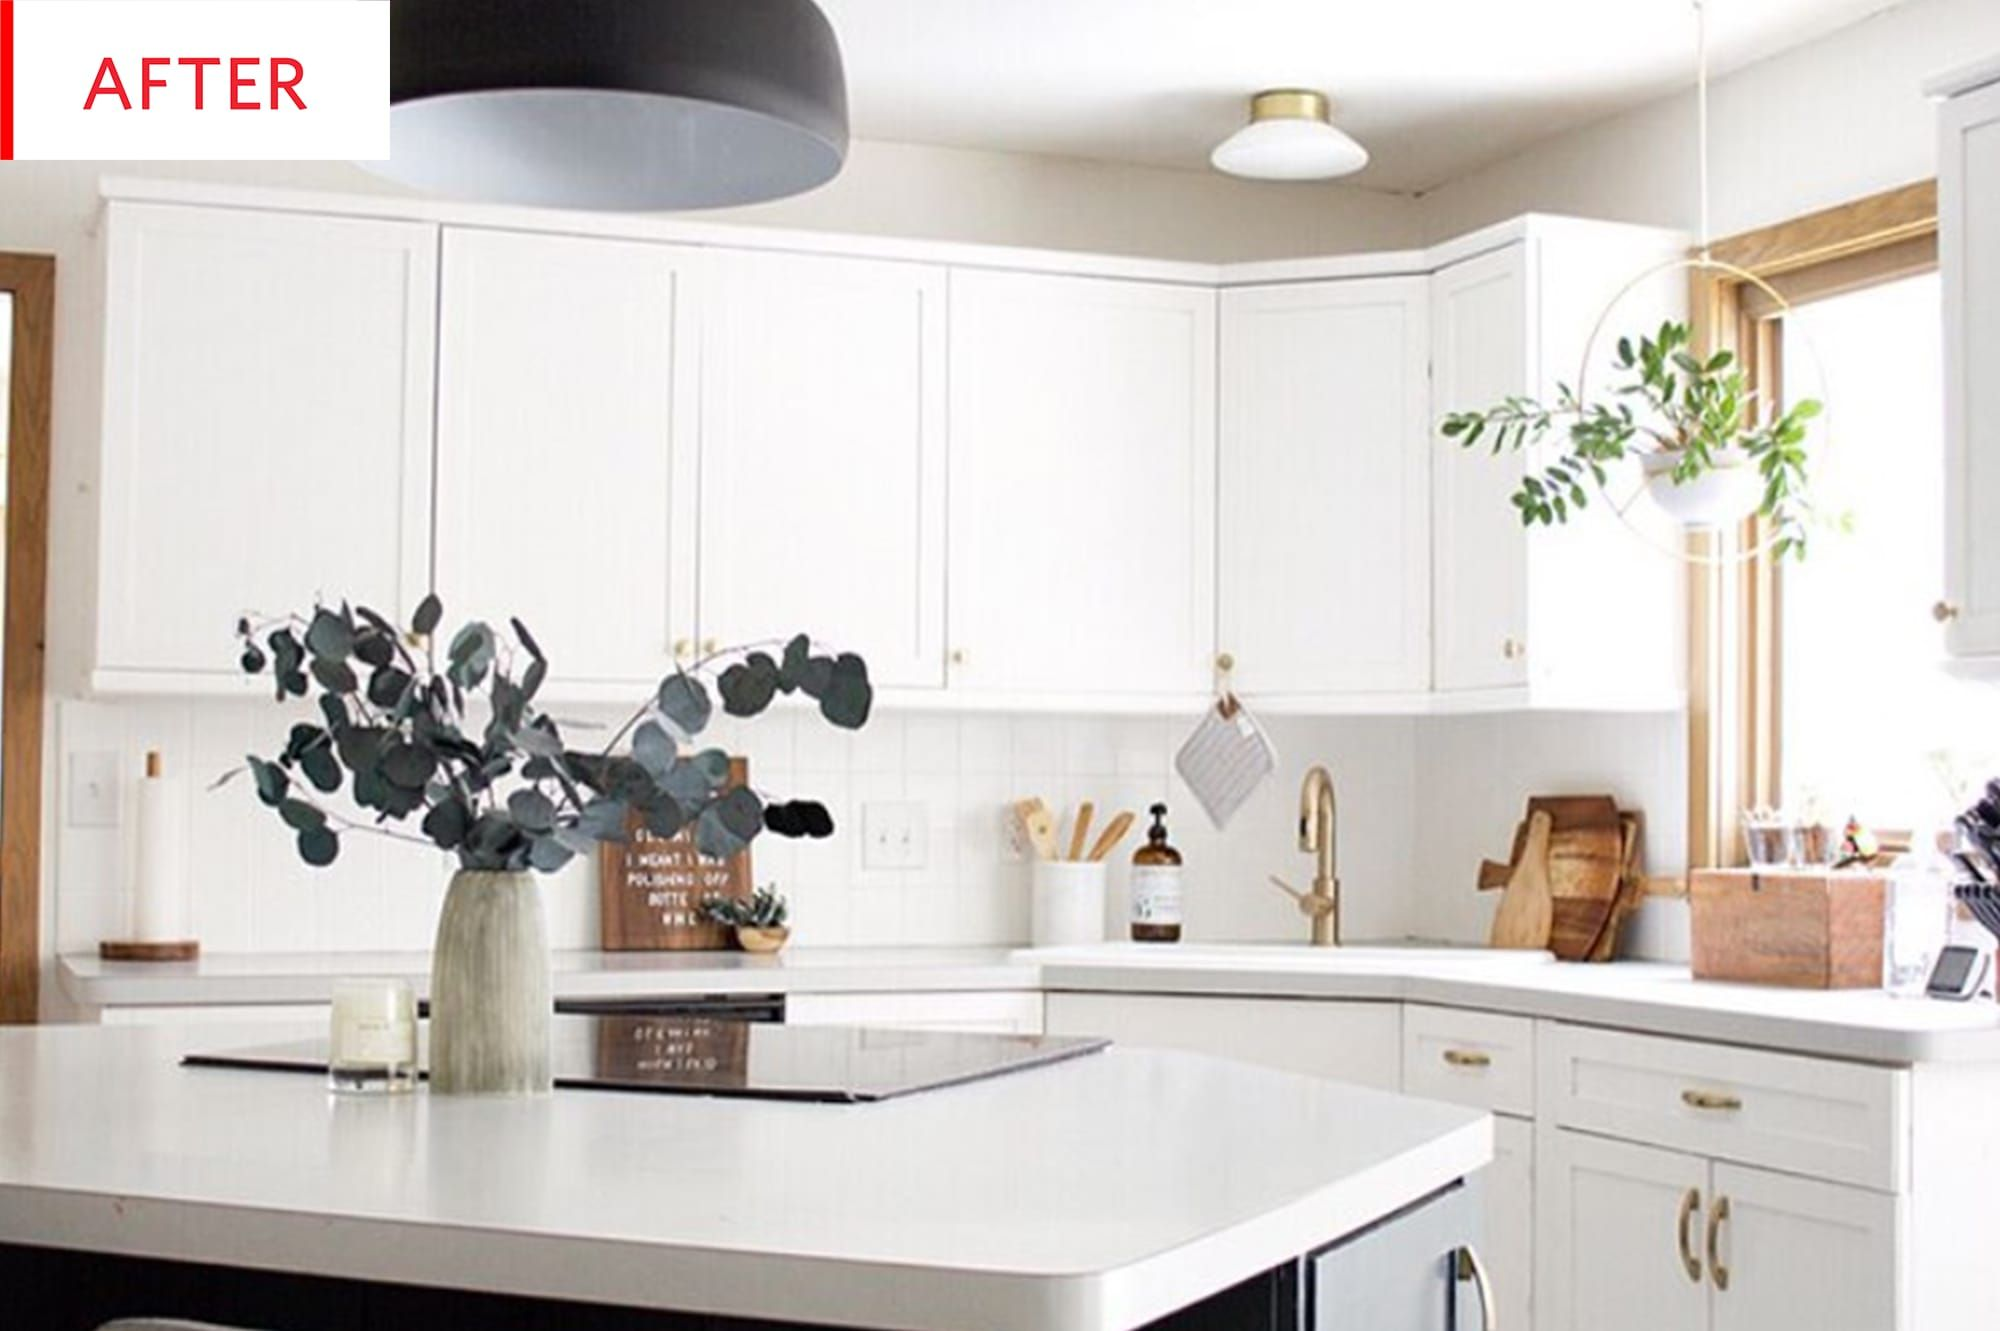 Before And After This Kitchen Has A Budget Solution For Dated Cabinet Doors Kitchen Remodel Kitchen Cabinets Before And After Budget Kitchen Remodel